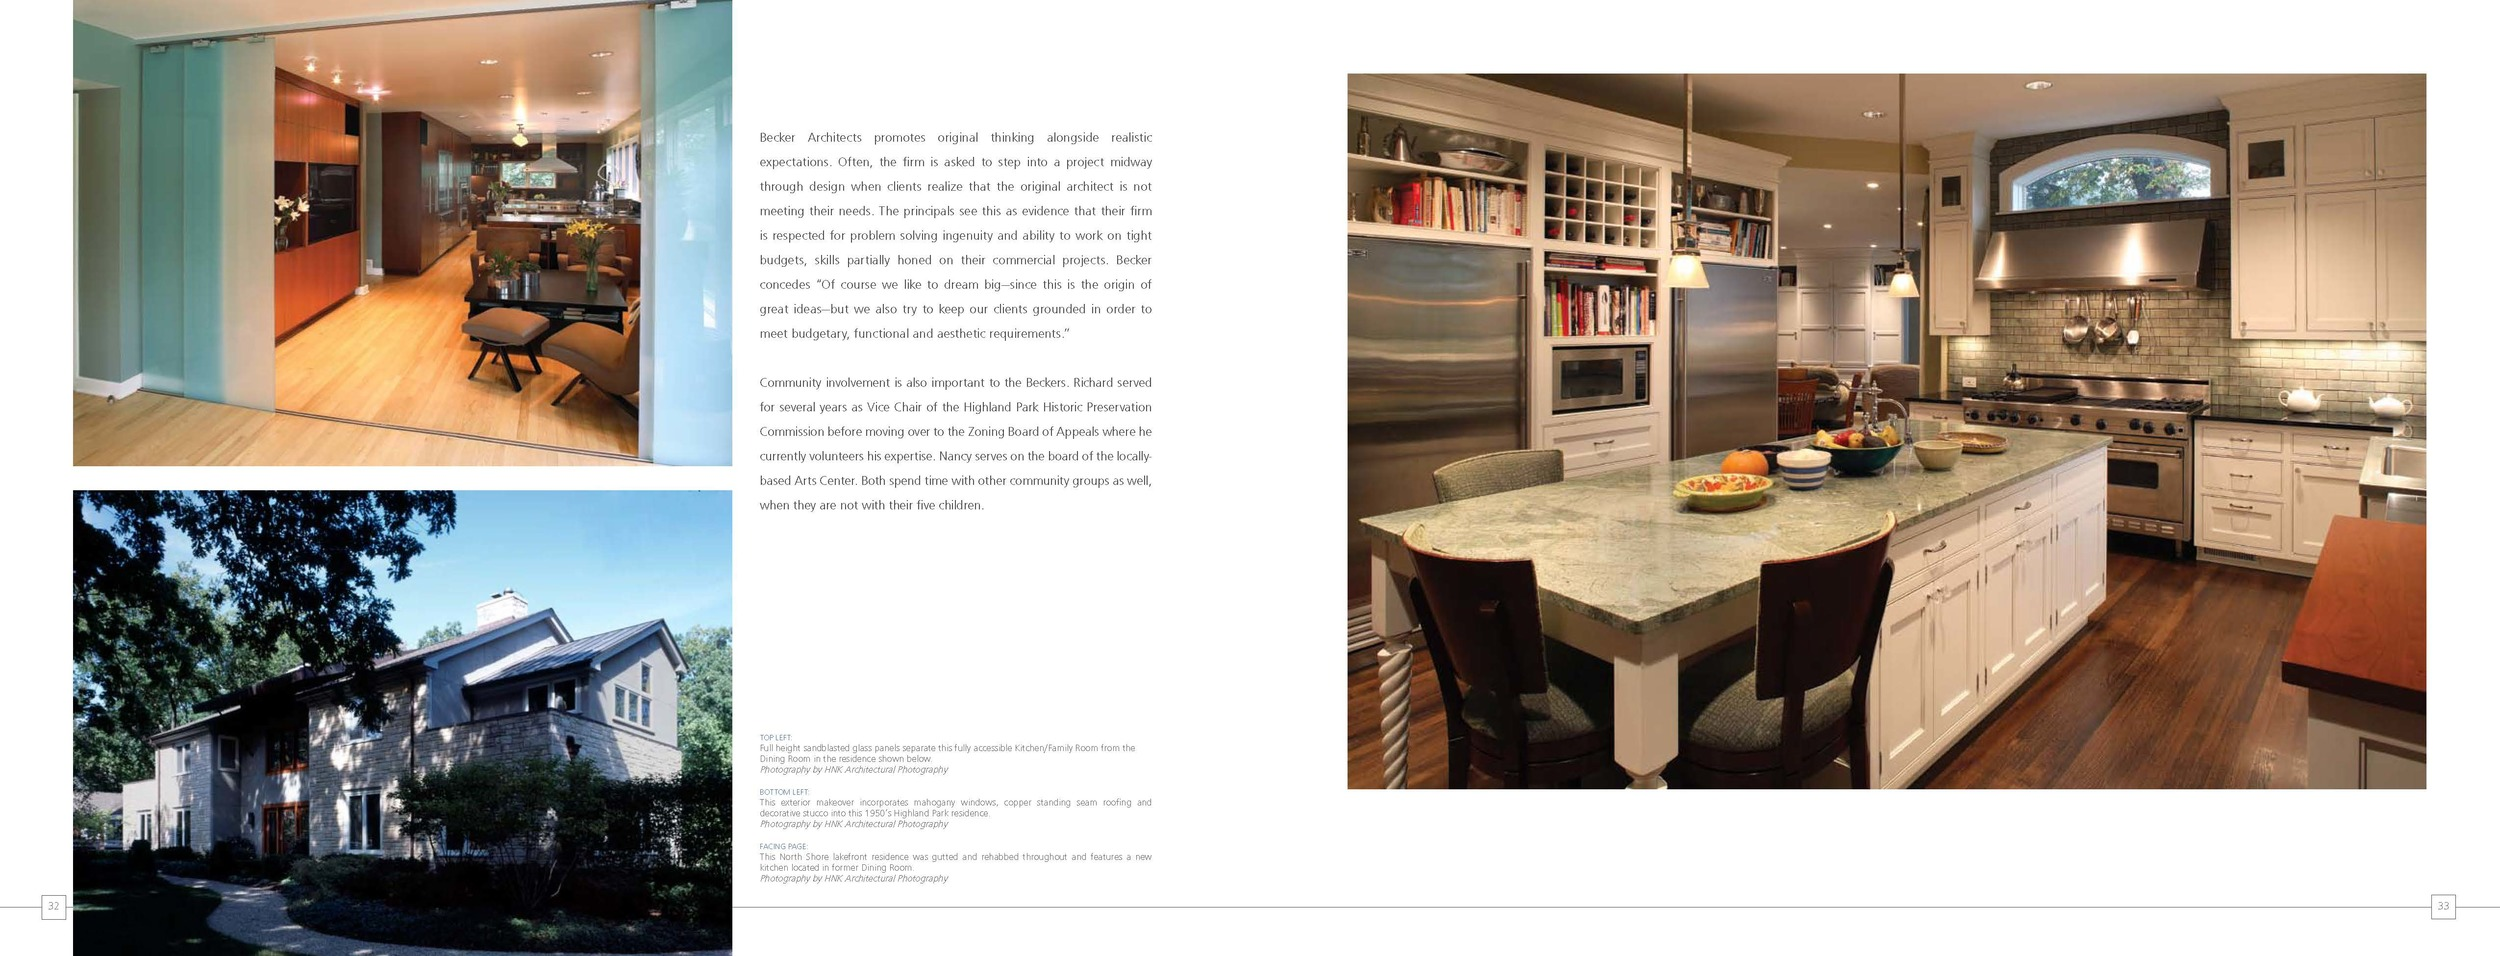 2007 Dream Homes Chicago_Page_2.jpg